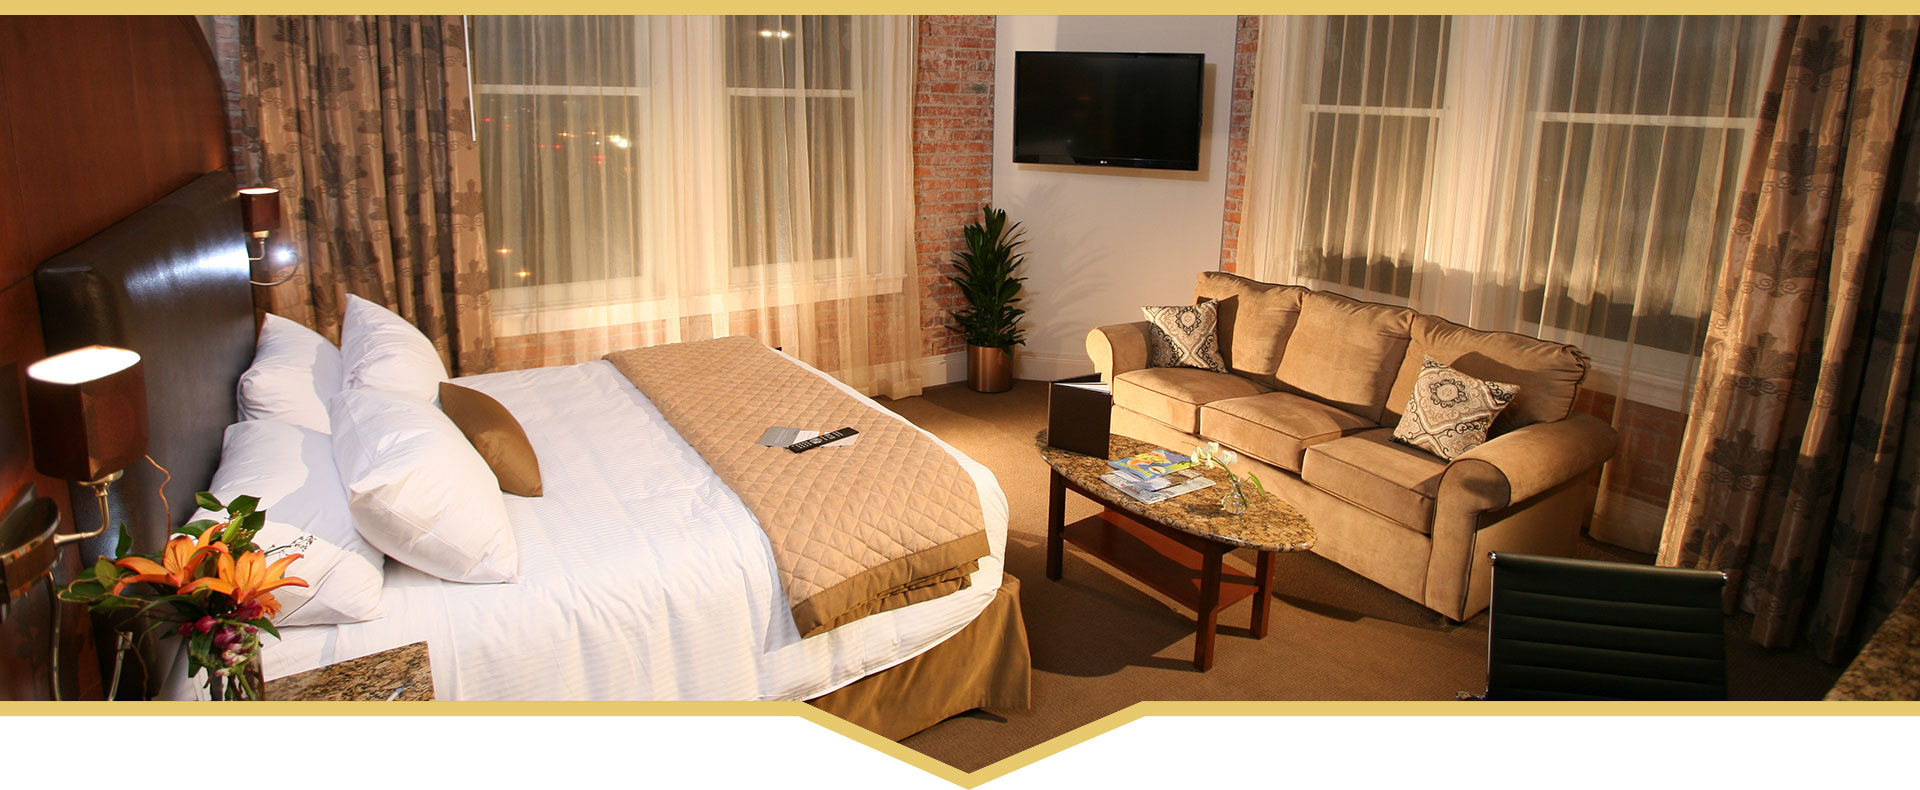 10% OFF HOTEL ROOMS & FREE UPGRADES